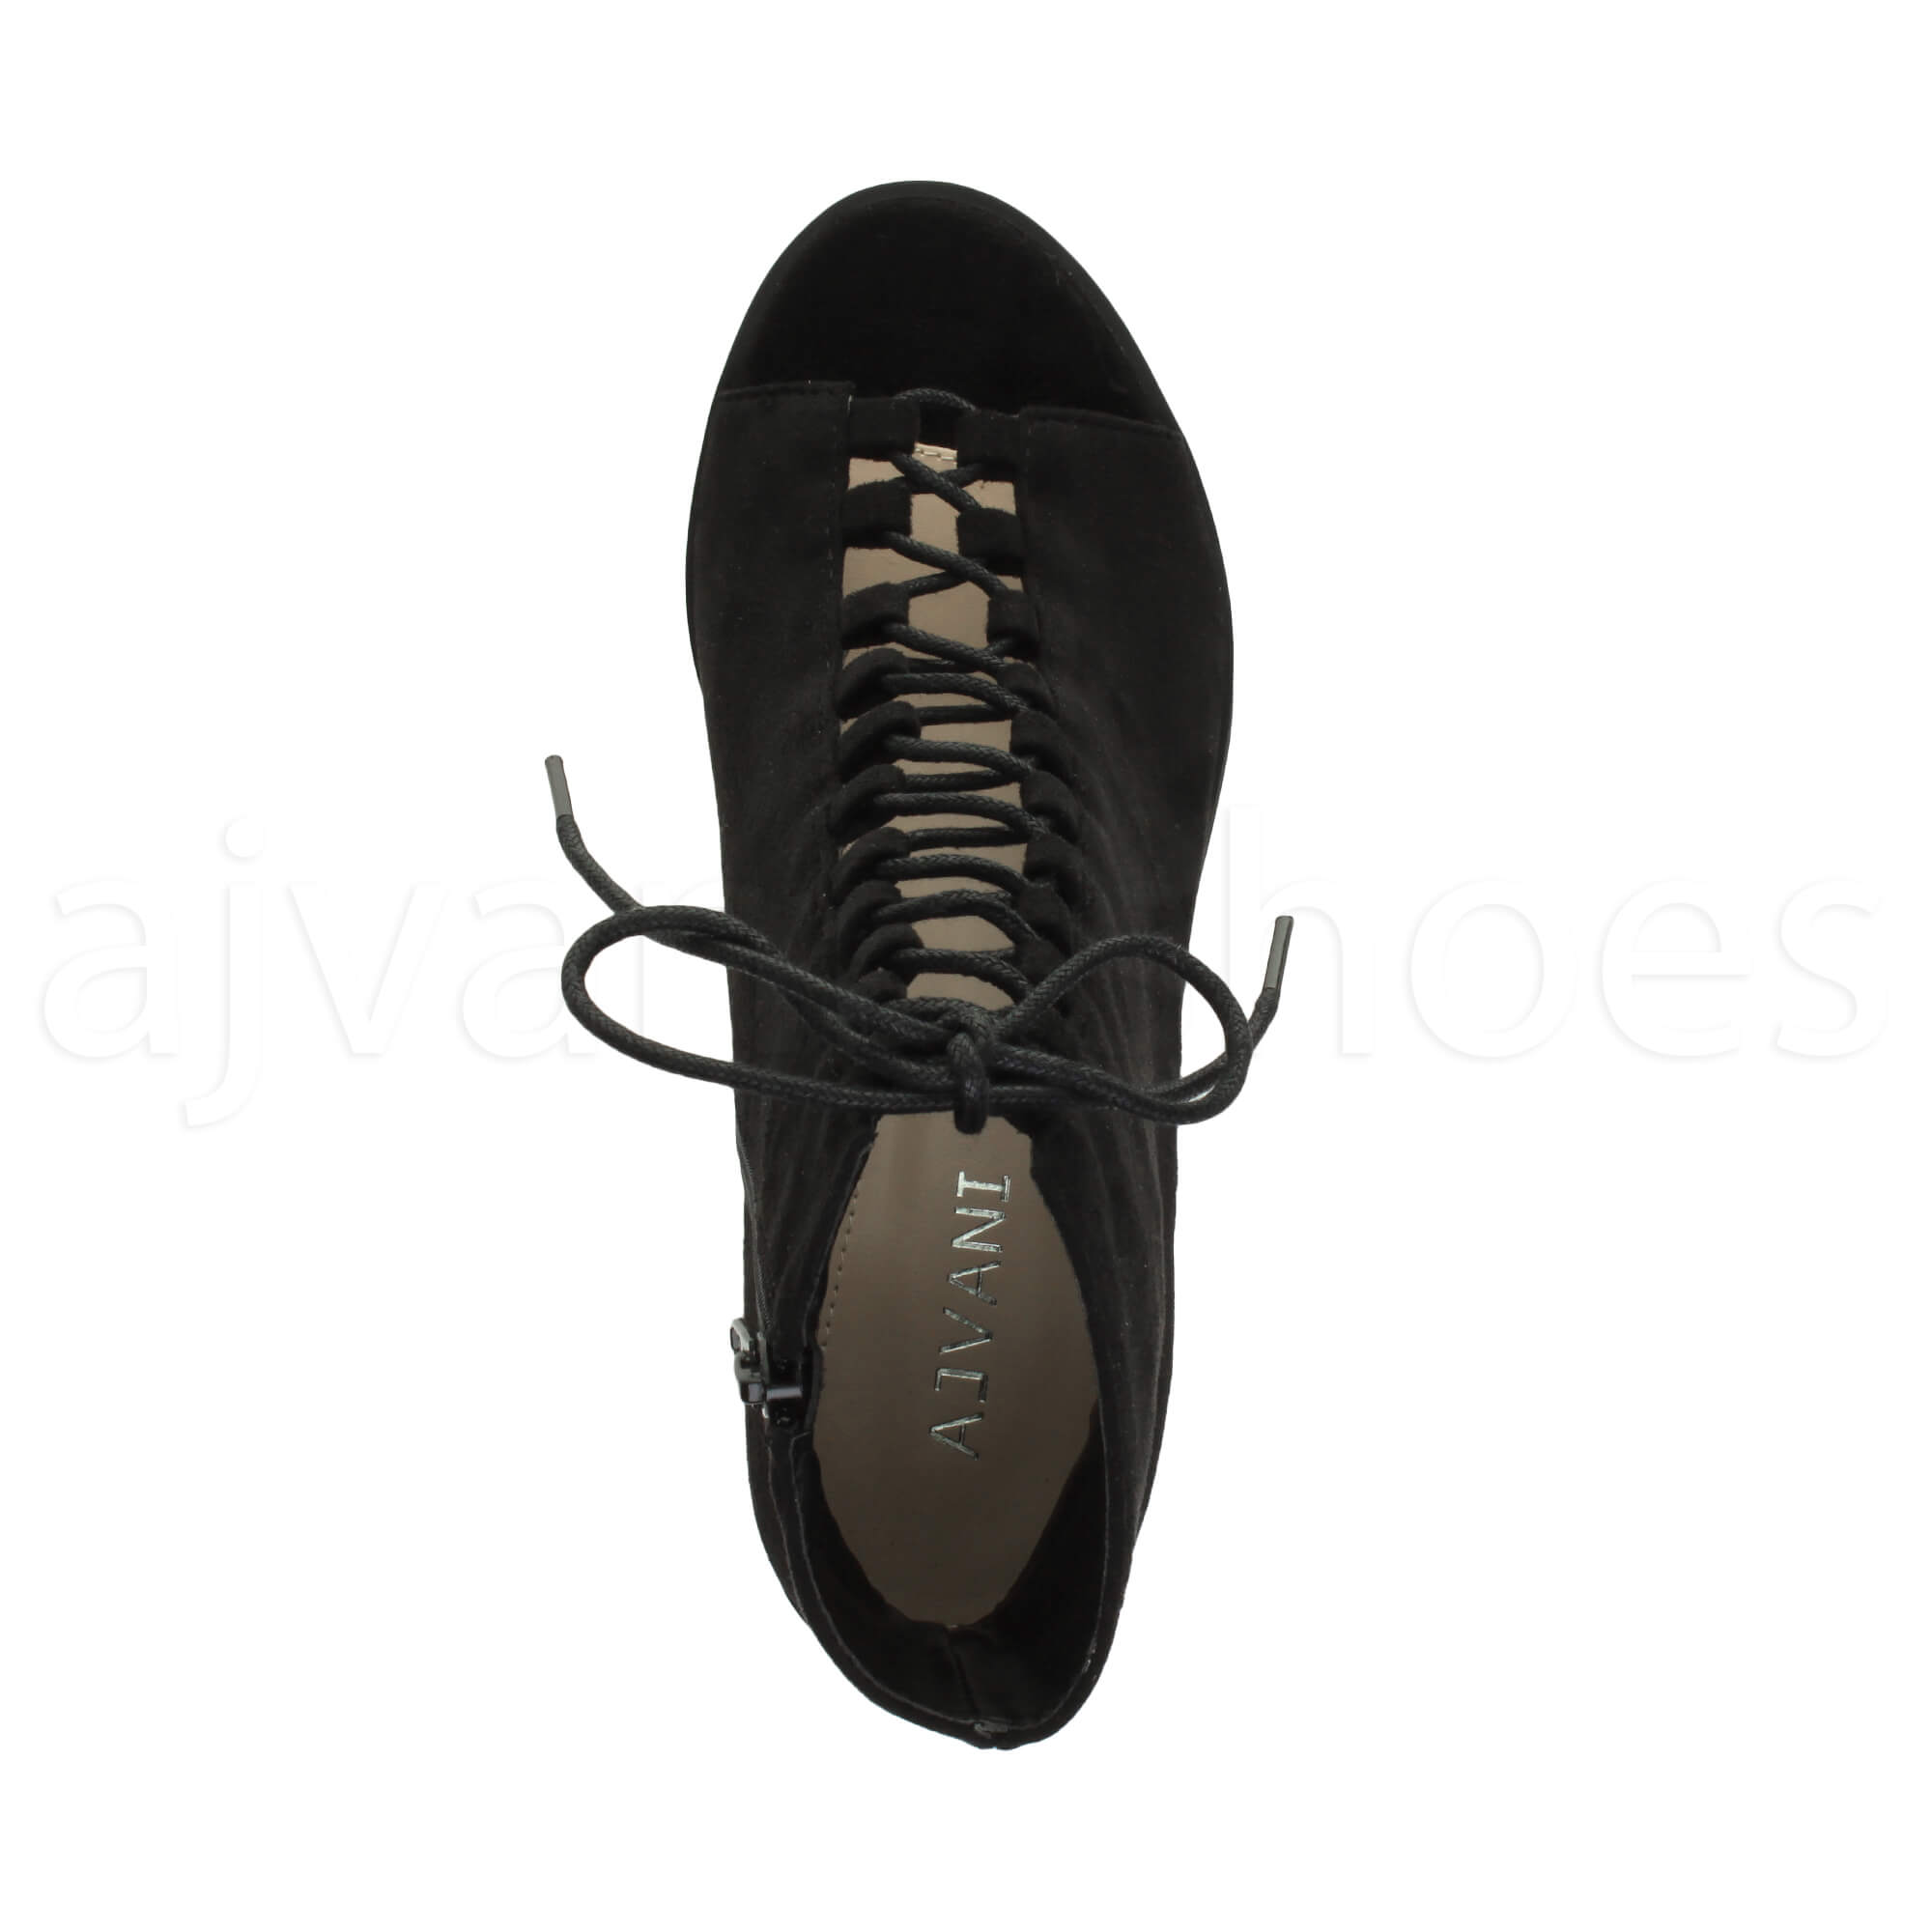 WOMENS-LADIES-BLOCK-MID-HEEL-LACE-UP-GHILLIE-ZIP-PEEP-TOE-ANKLE-BOOTS-SHOES-SIZE